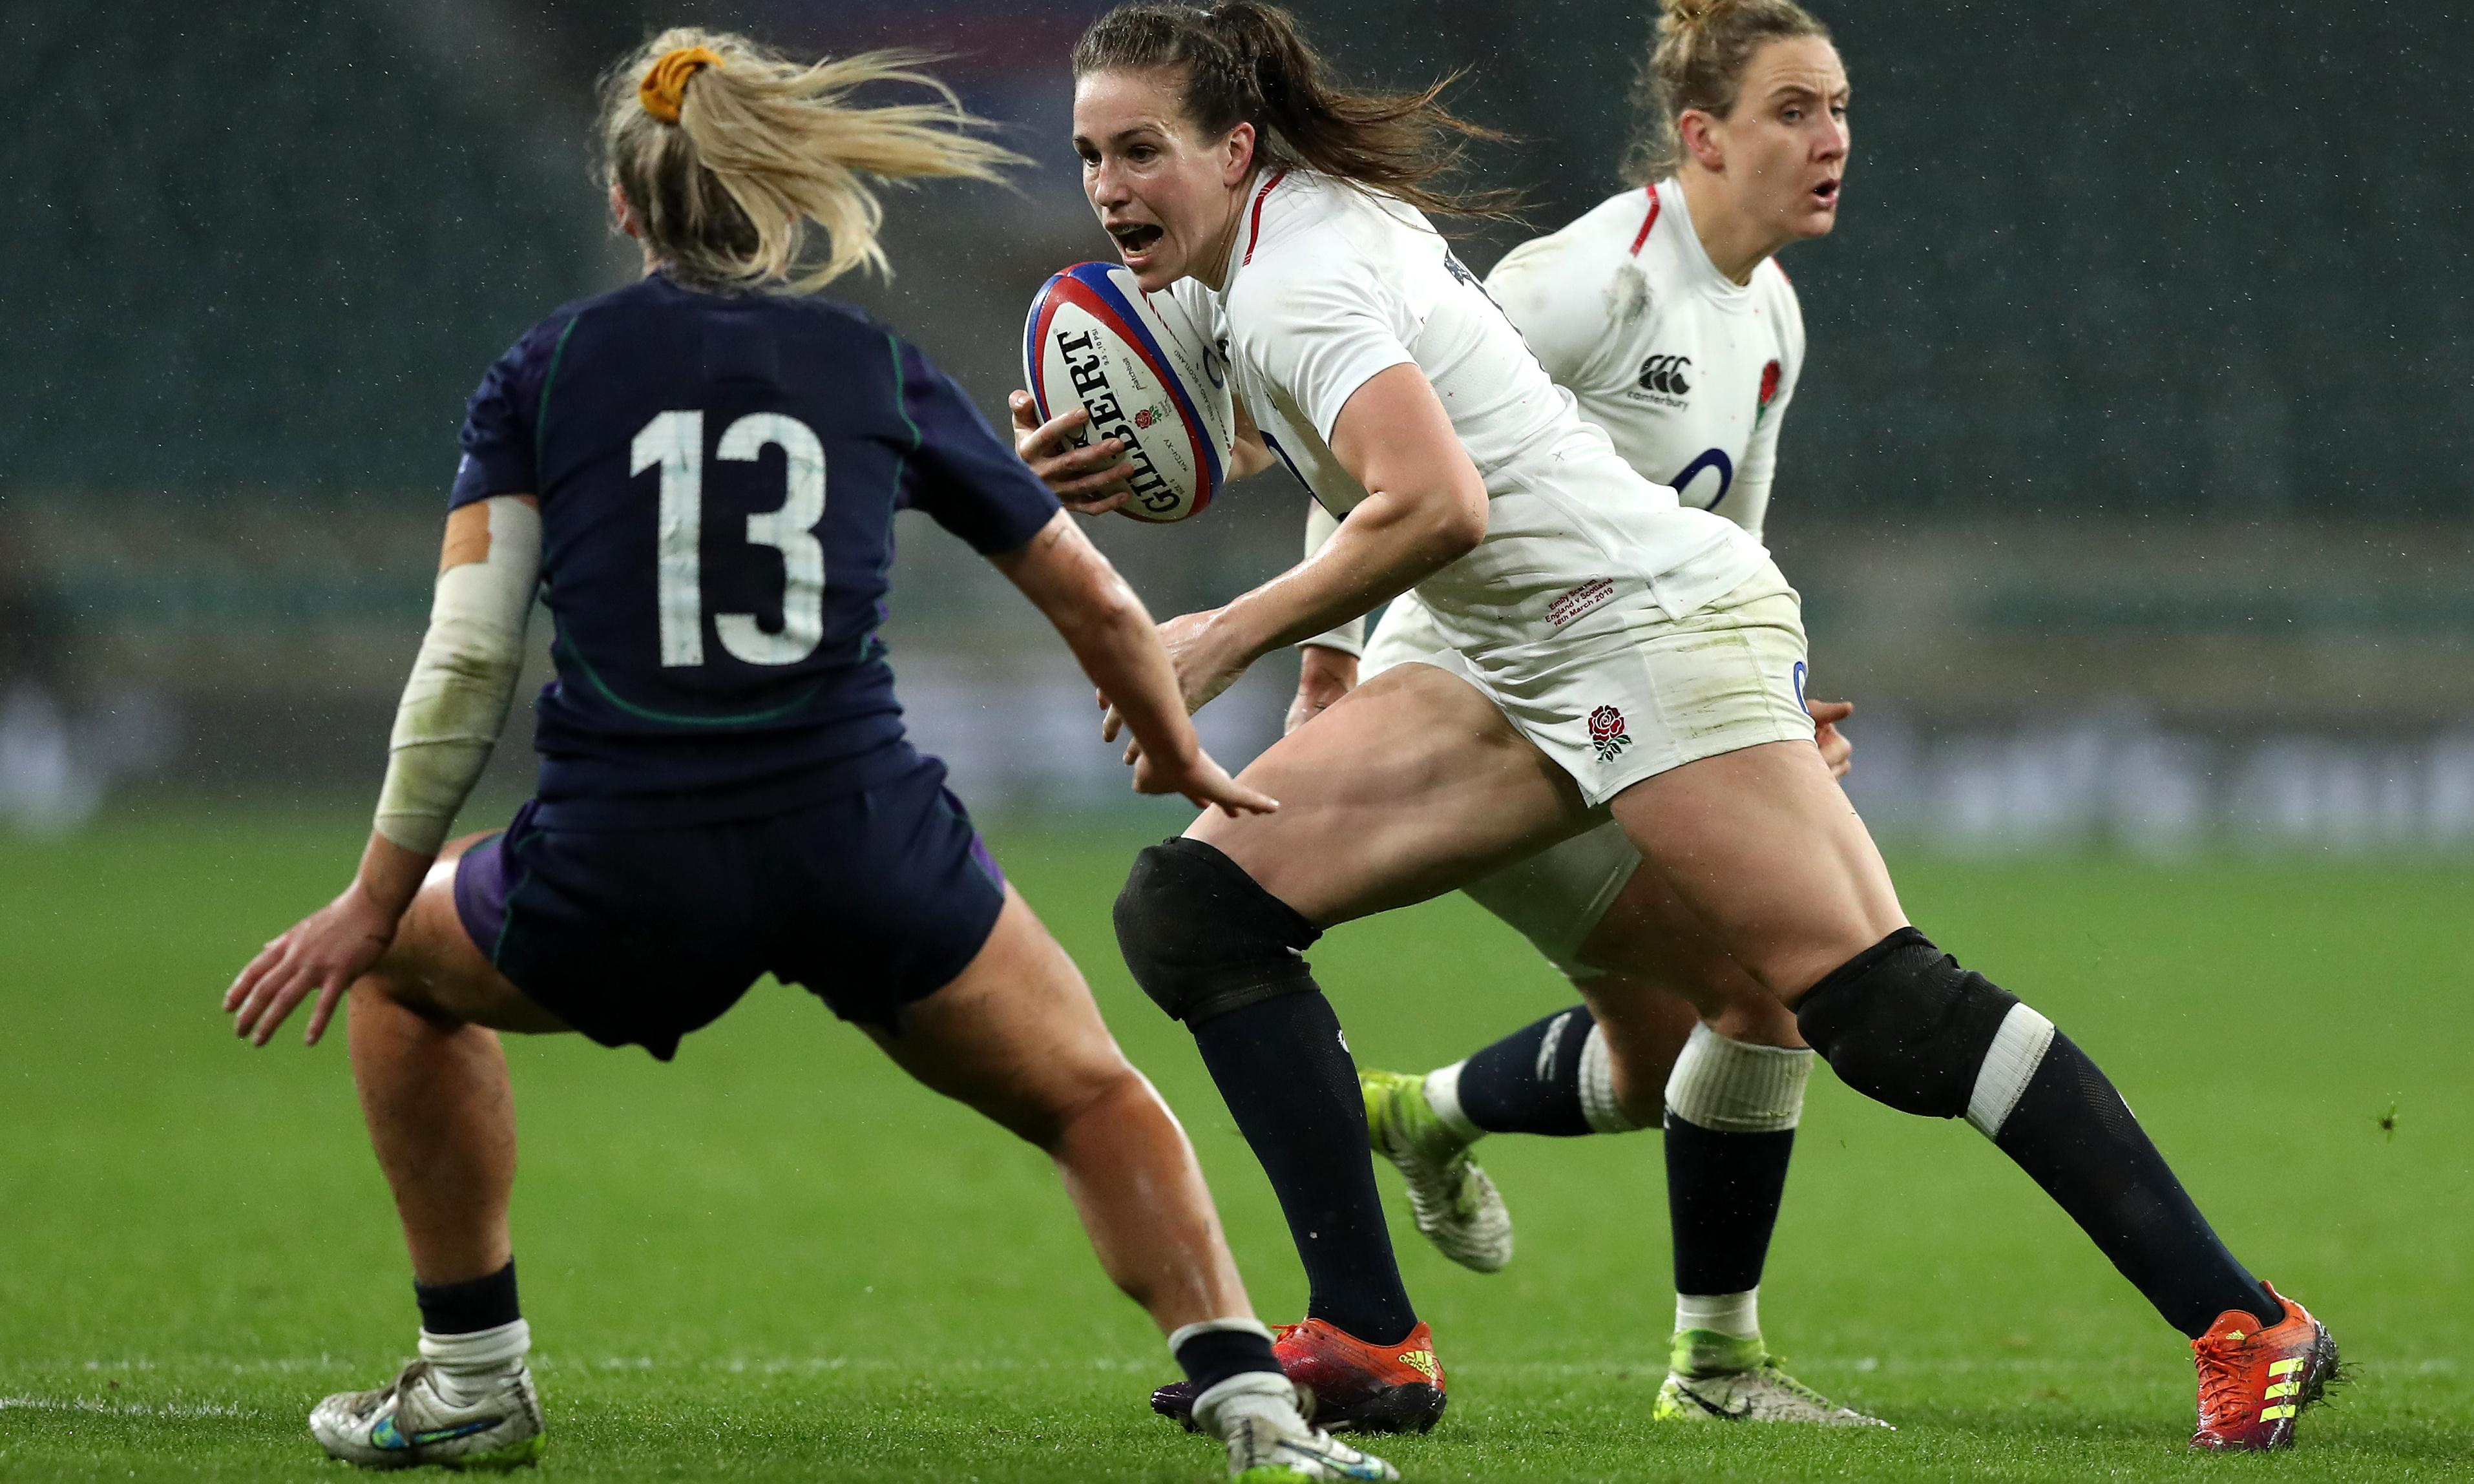 Emily Scarratt focuses on France after whirlwind week and world award